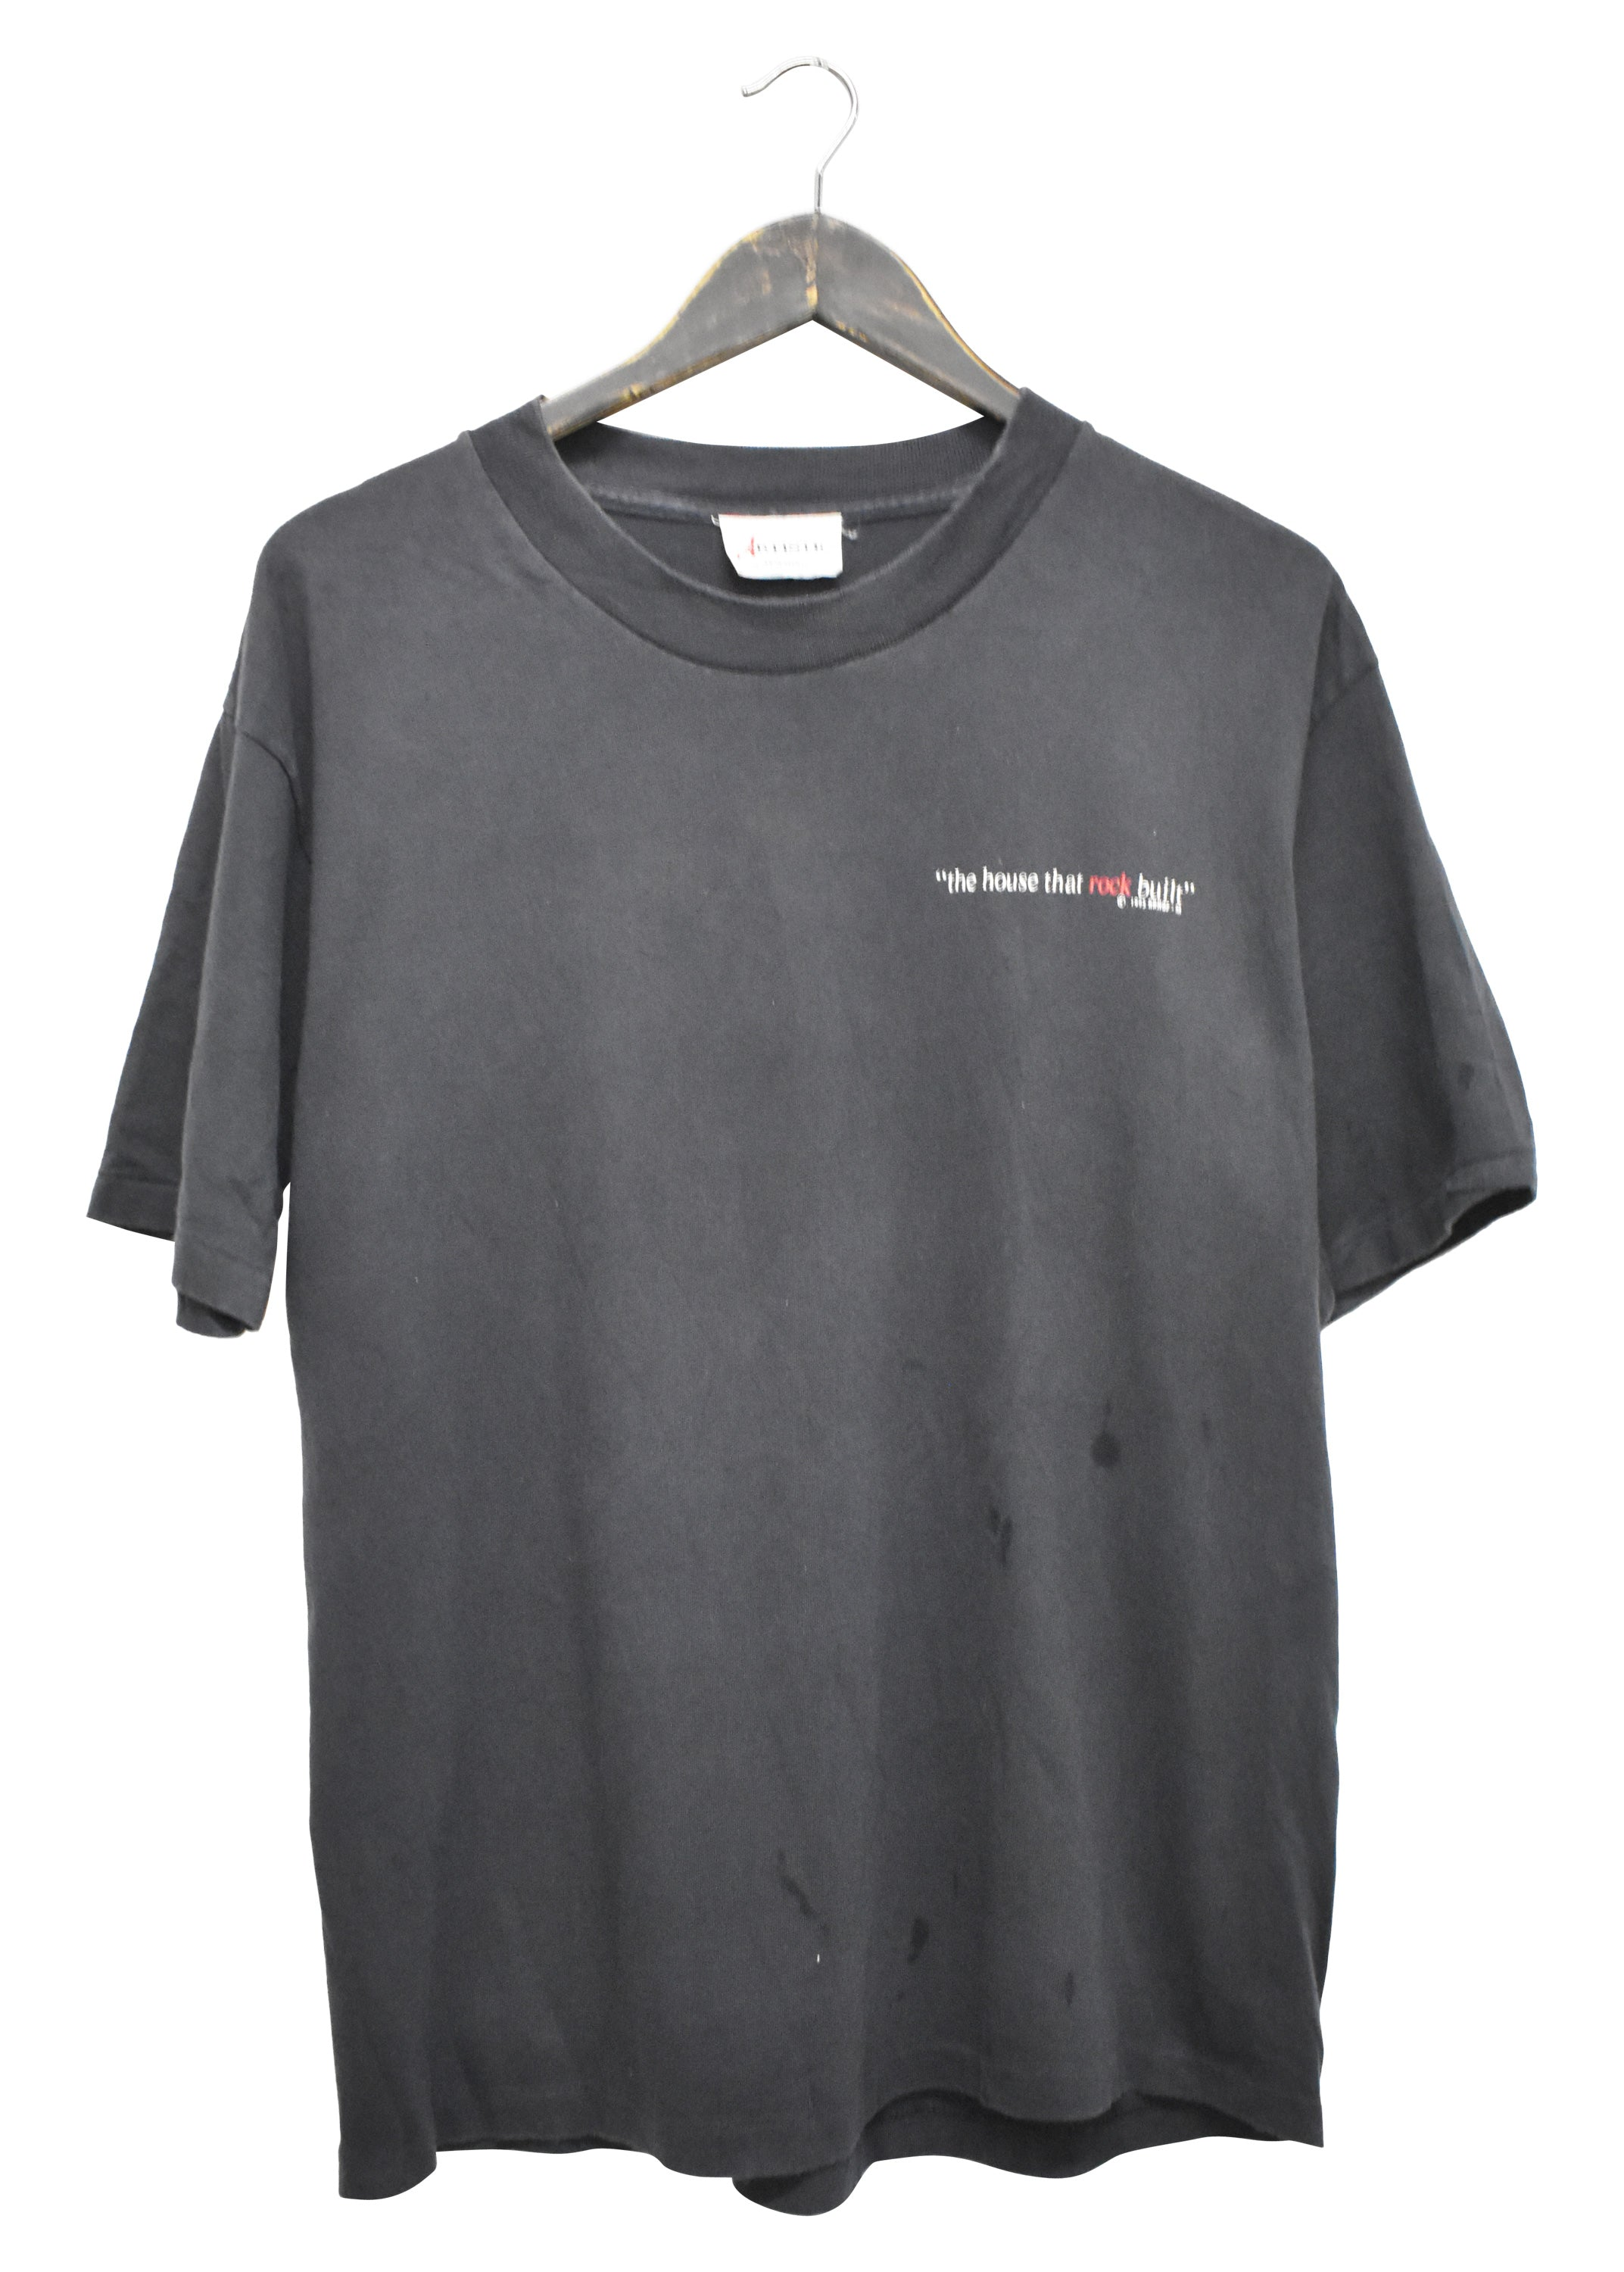 1989 PANTERA 'COWBOYS FROM HELL' VINTAGE TEE